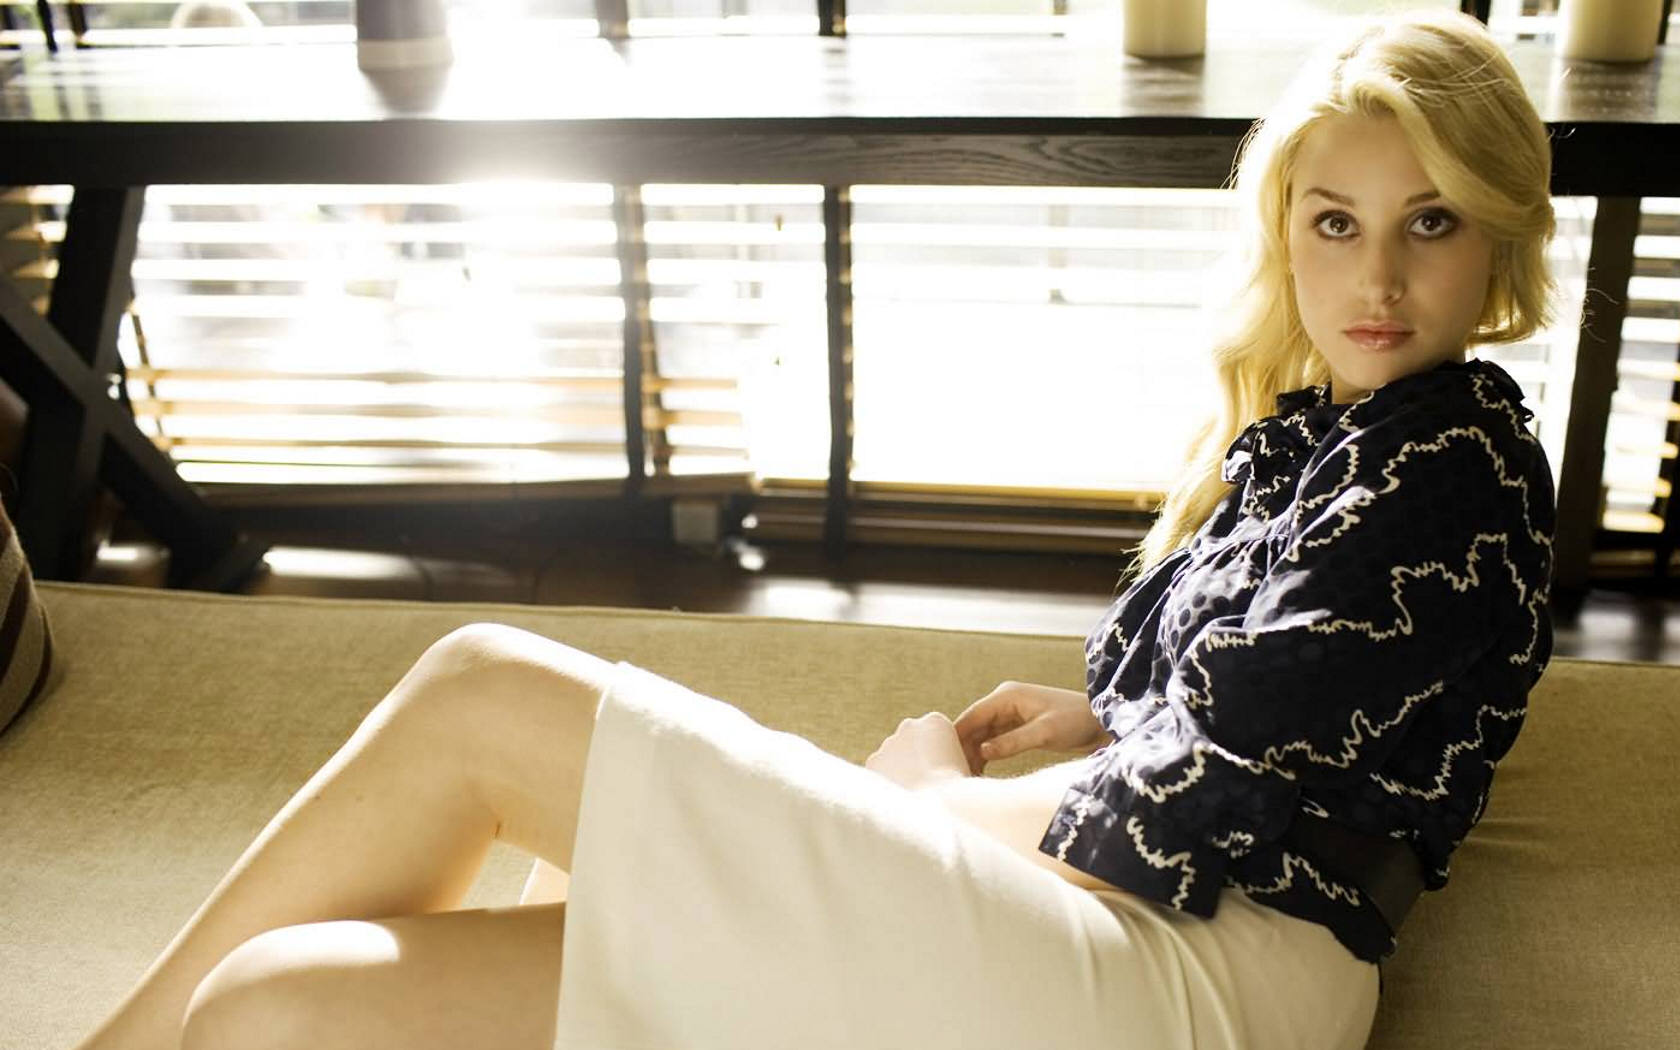 1680x1050 - Whitney Port Wallpapers 3